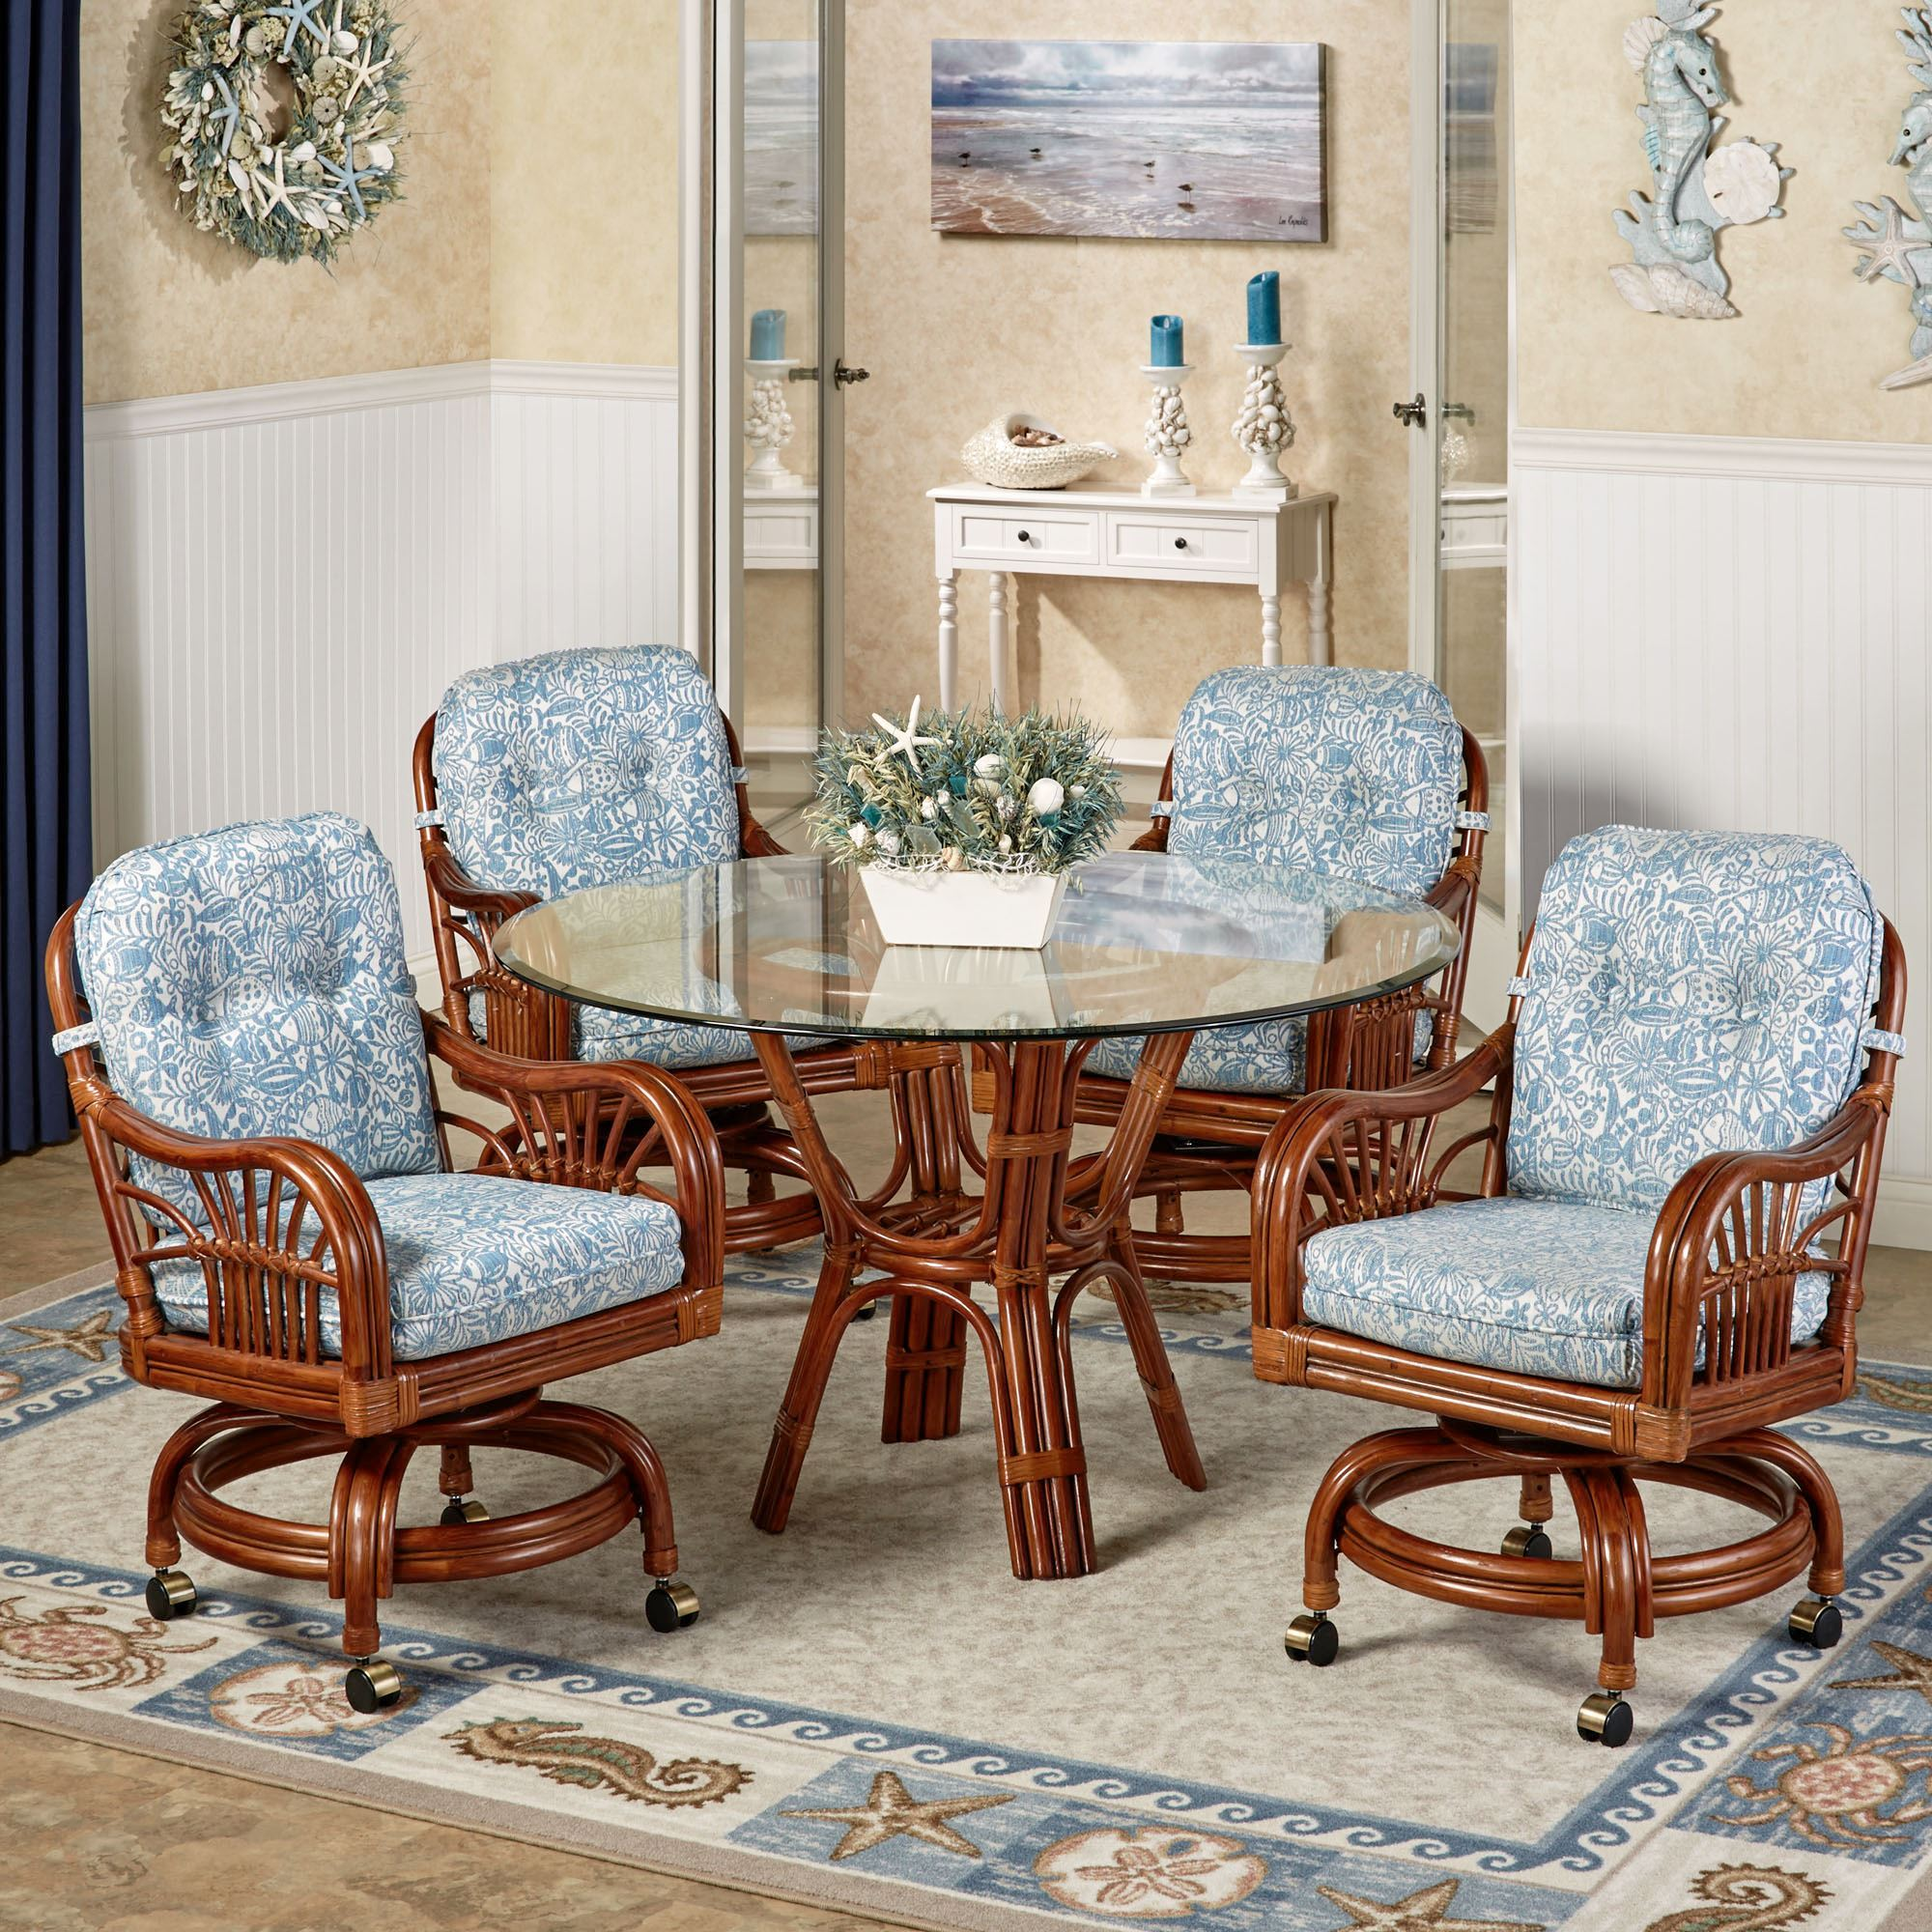 Kitchen Table With Chairs On Wheels: Leikela Malibu Seaside Tropical Dining Furniture Set